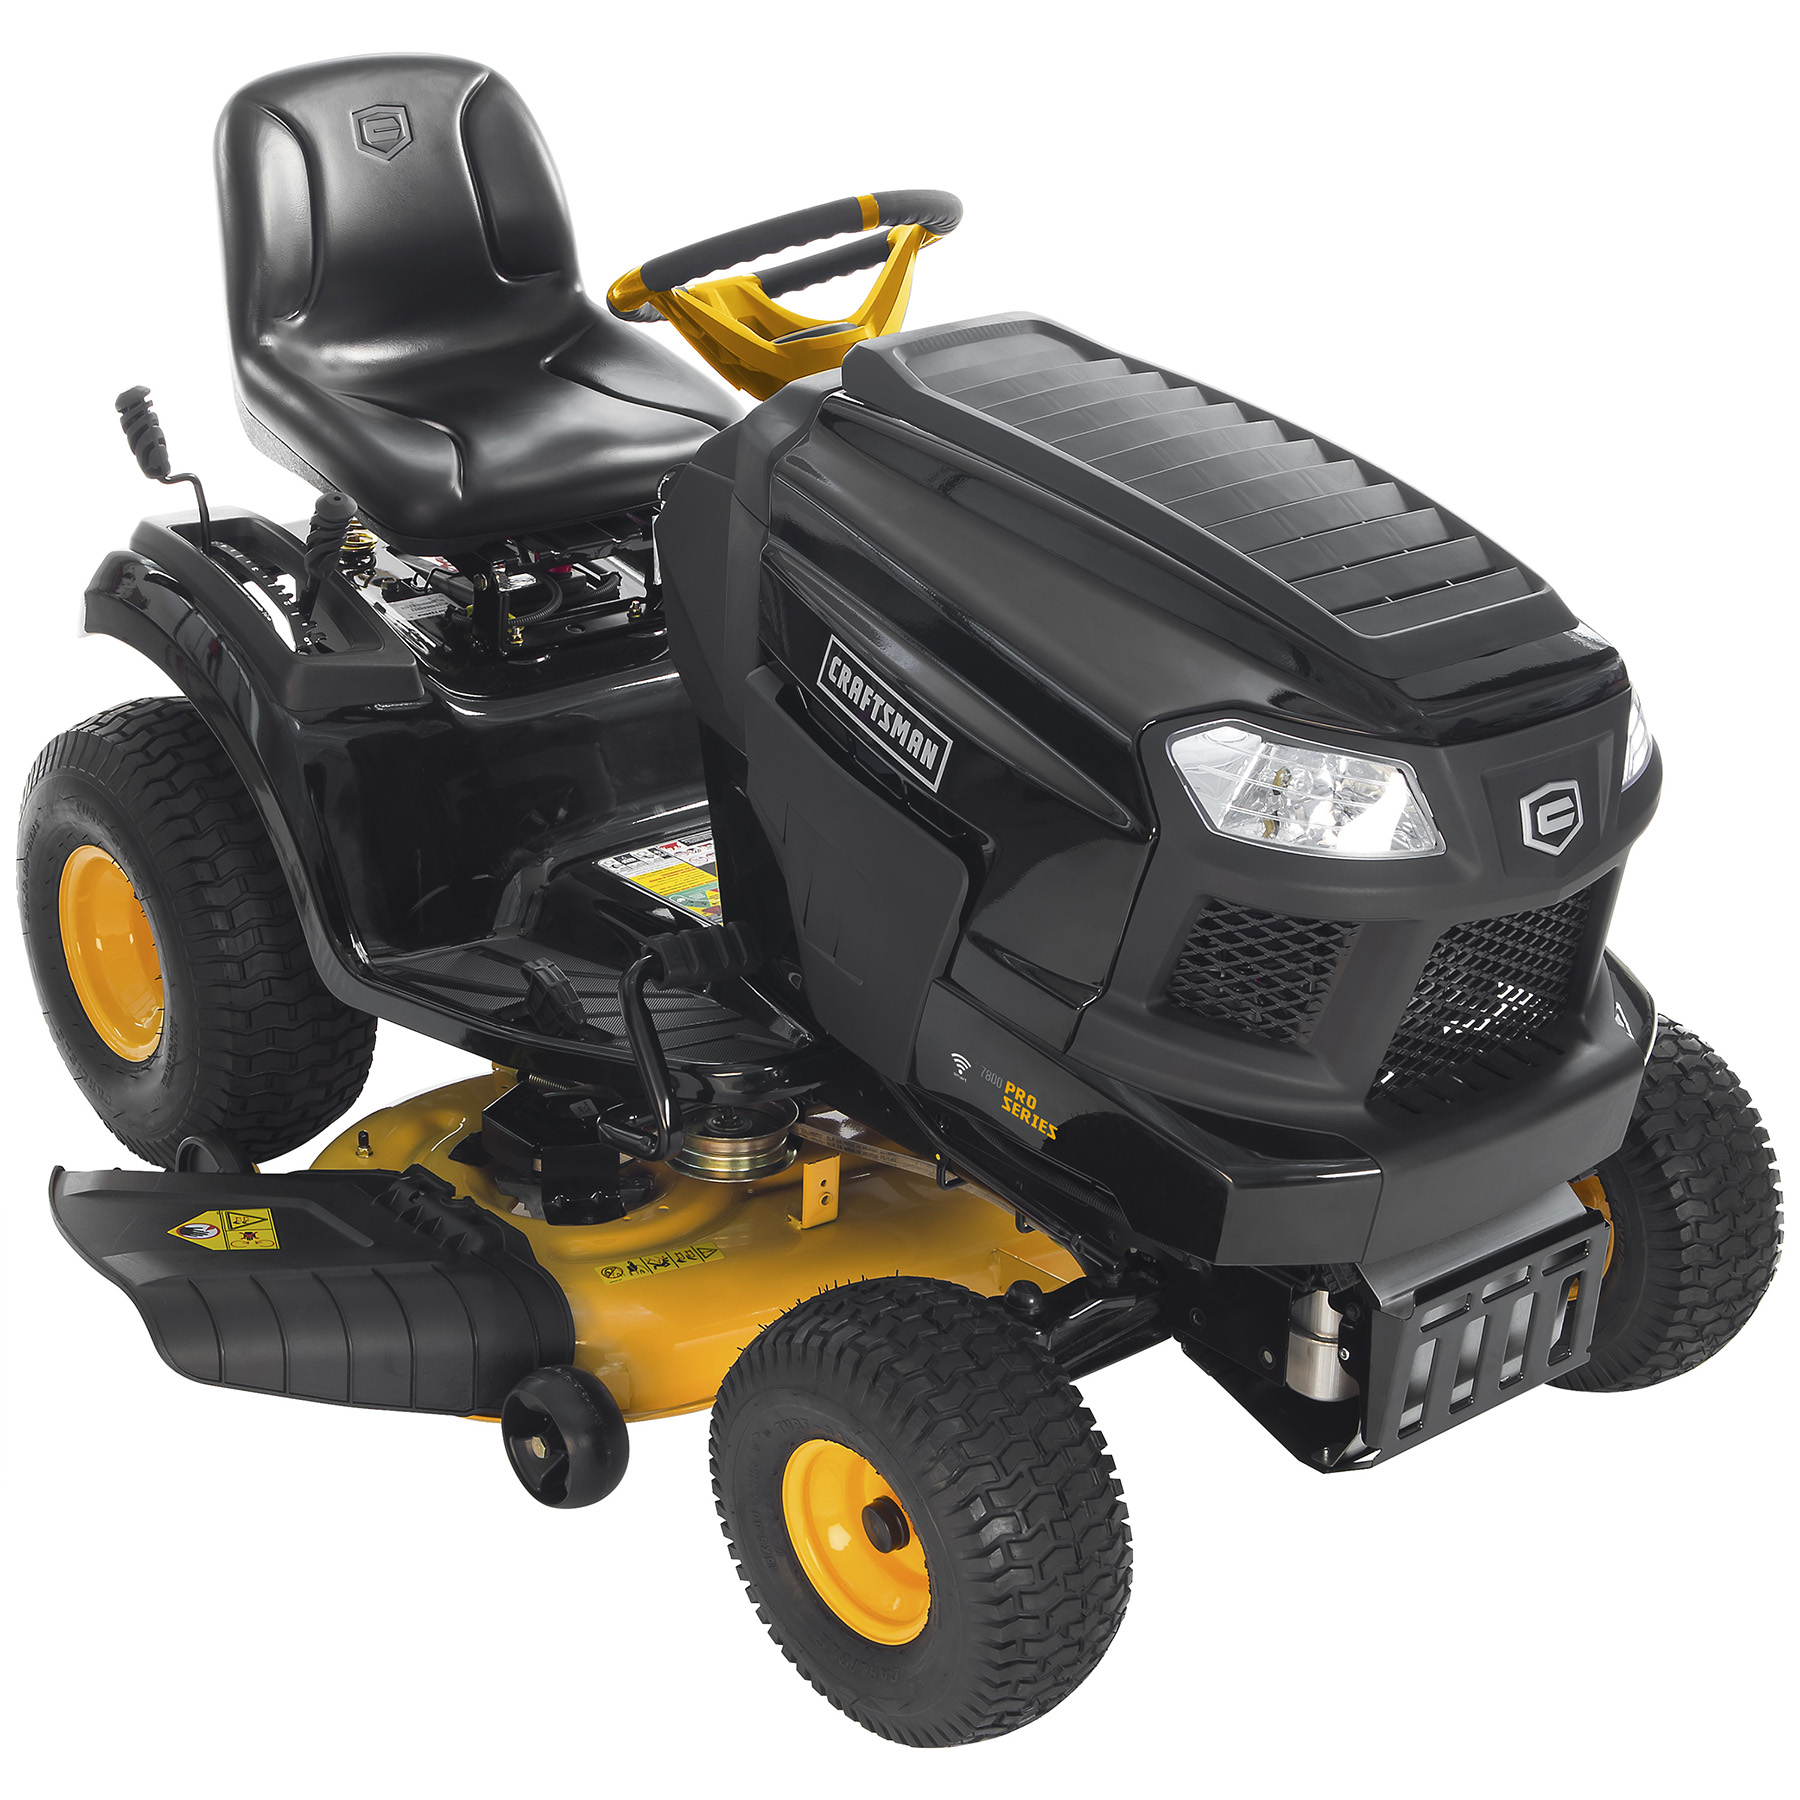 craftsman proseries 27038 42 20 hp kohler v twin riding mower with smart lawn technology [ 1800 x 1800 Pixel ]